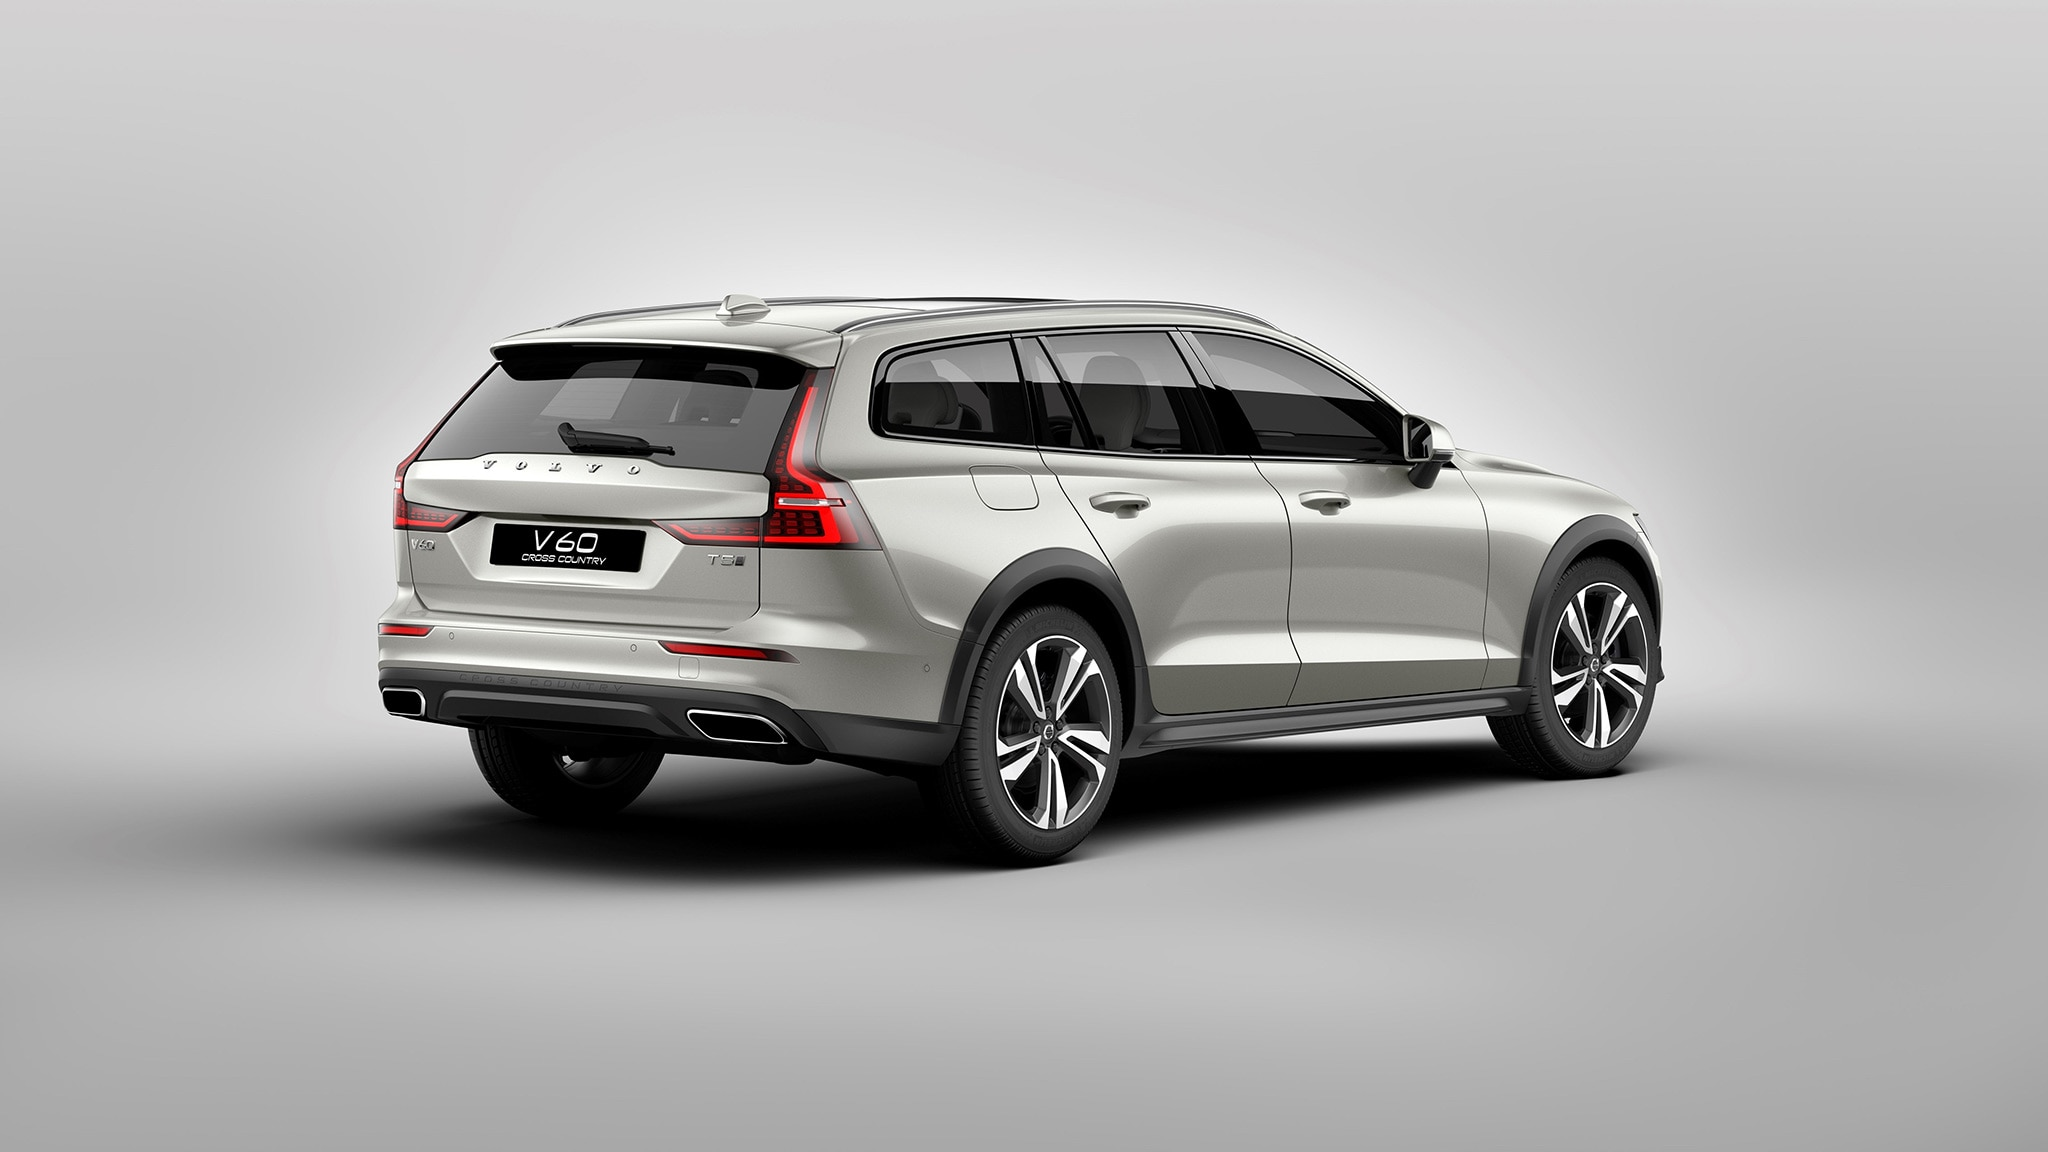 30 New 2020 Volvo V60 Cross Country Redesign and Concept